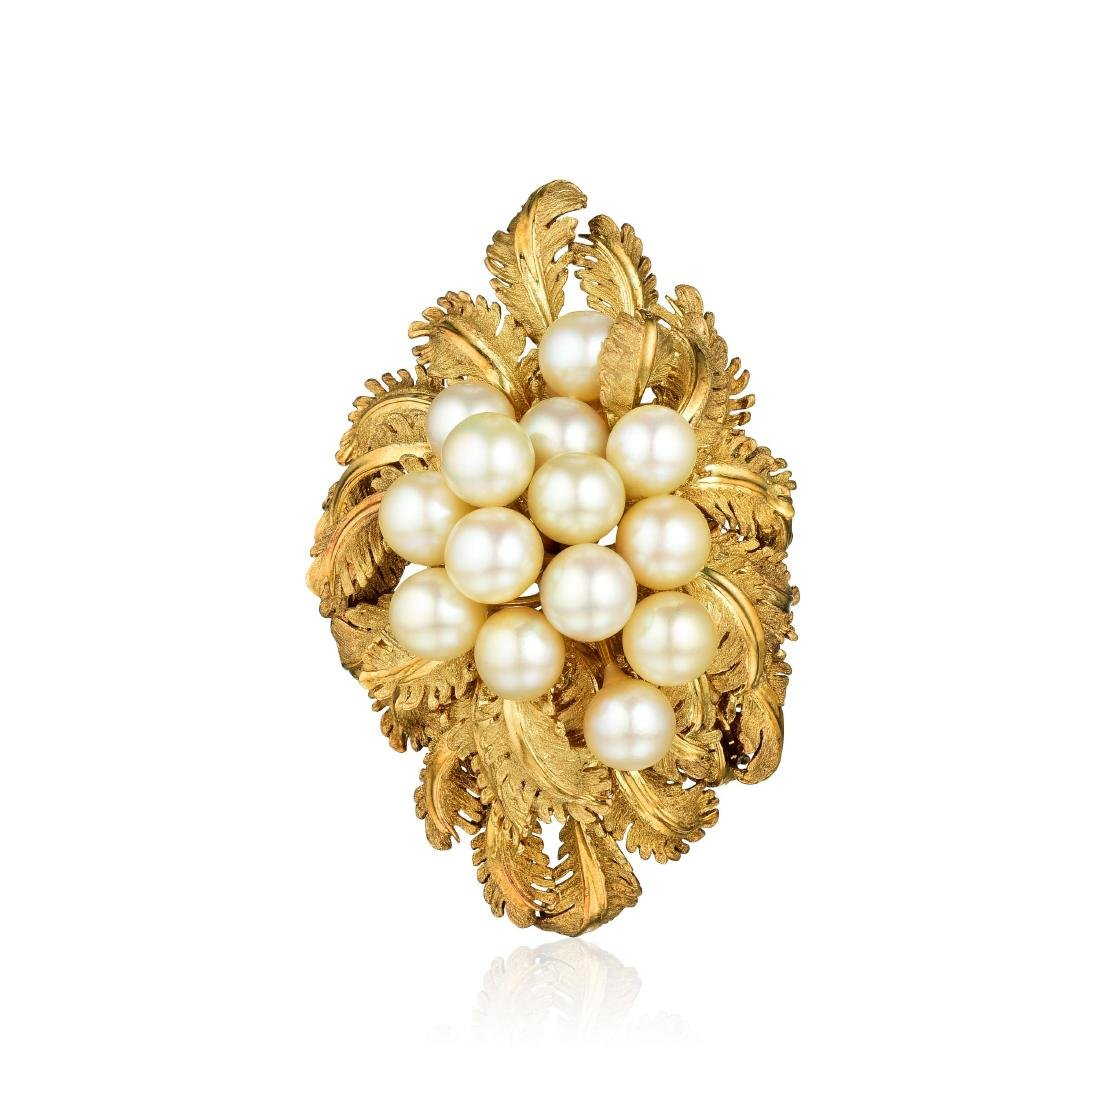 Erwin Pearl Cultured Pearl Brooch